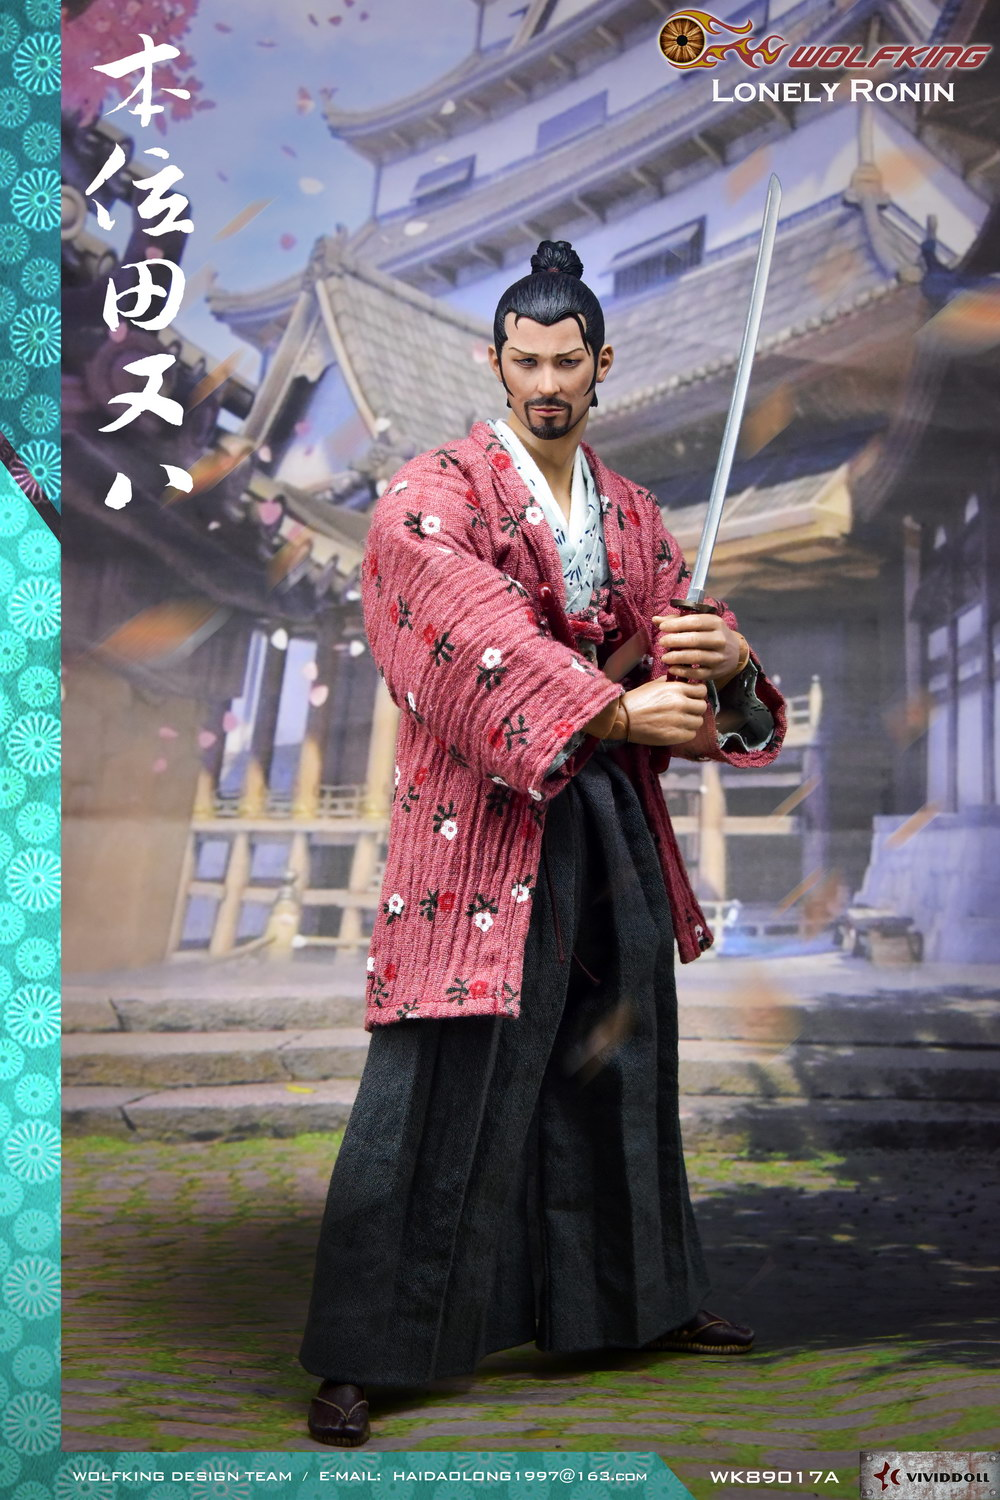 Stylized - NEW PRODUCT: WOLFKING New Products: 1/6 Lonely Ronin - Bian Tian and eight movable dolls WK89017A 10172710